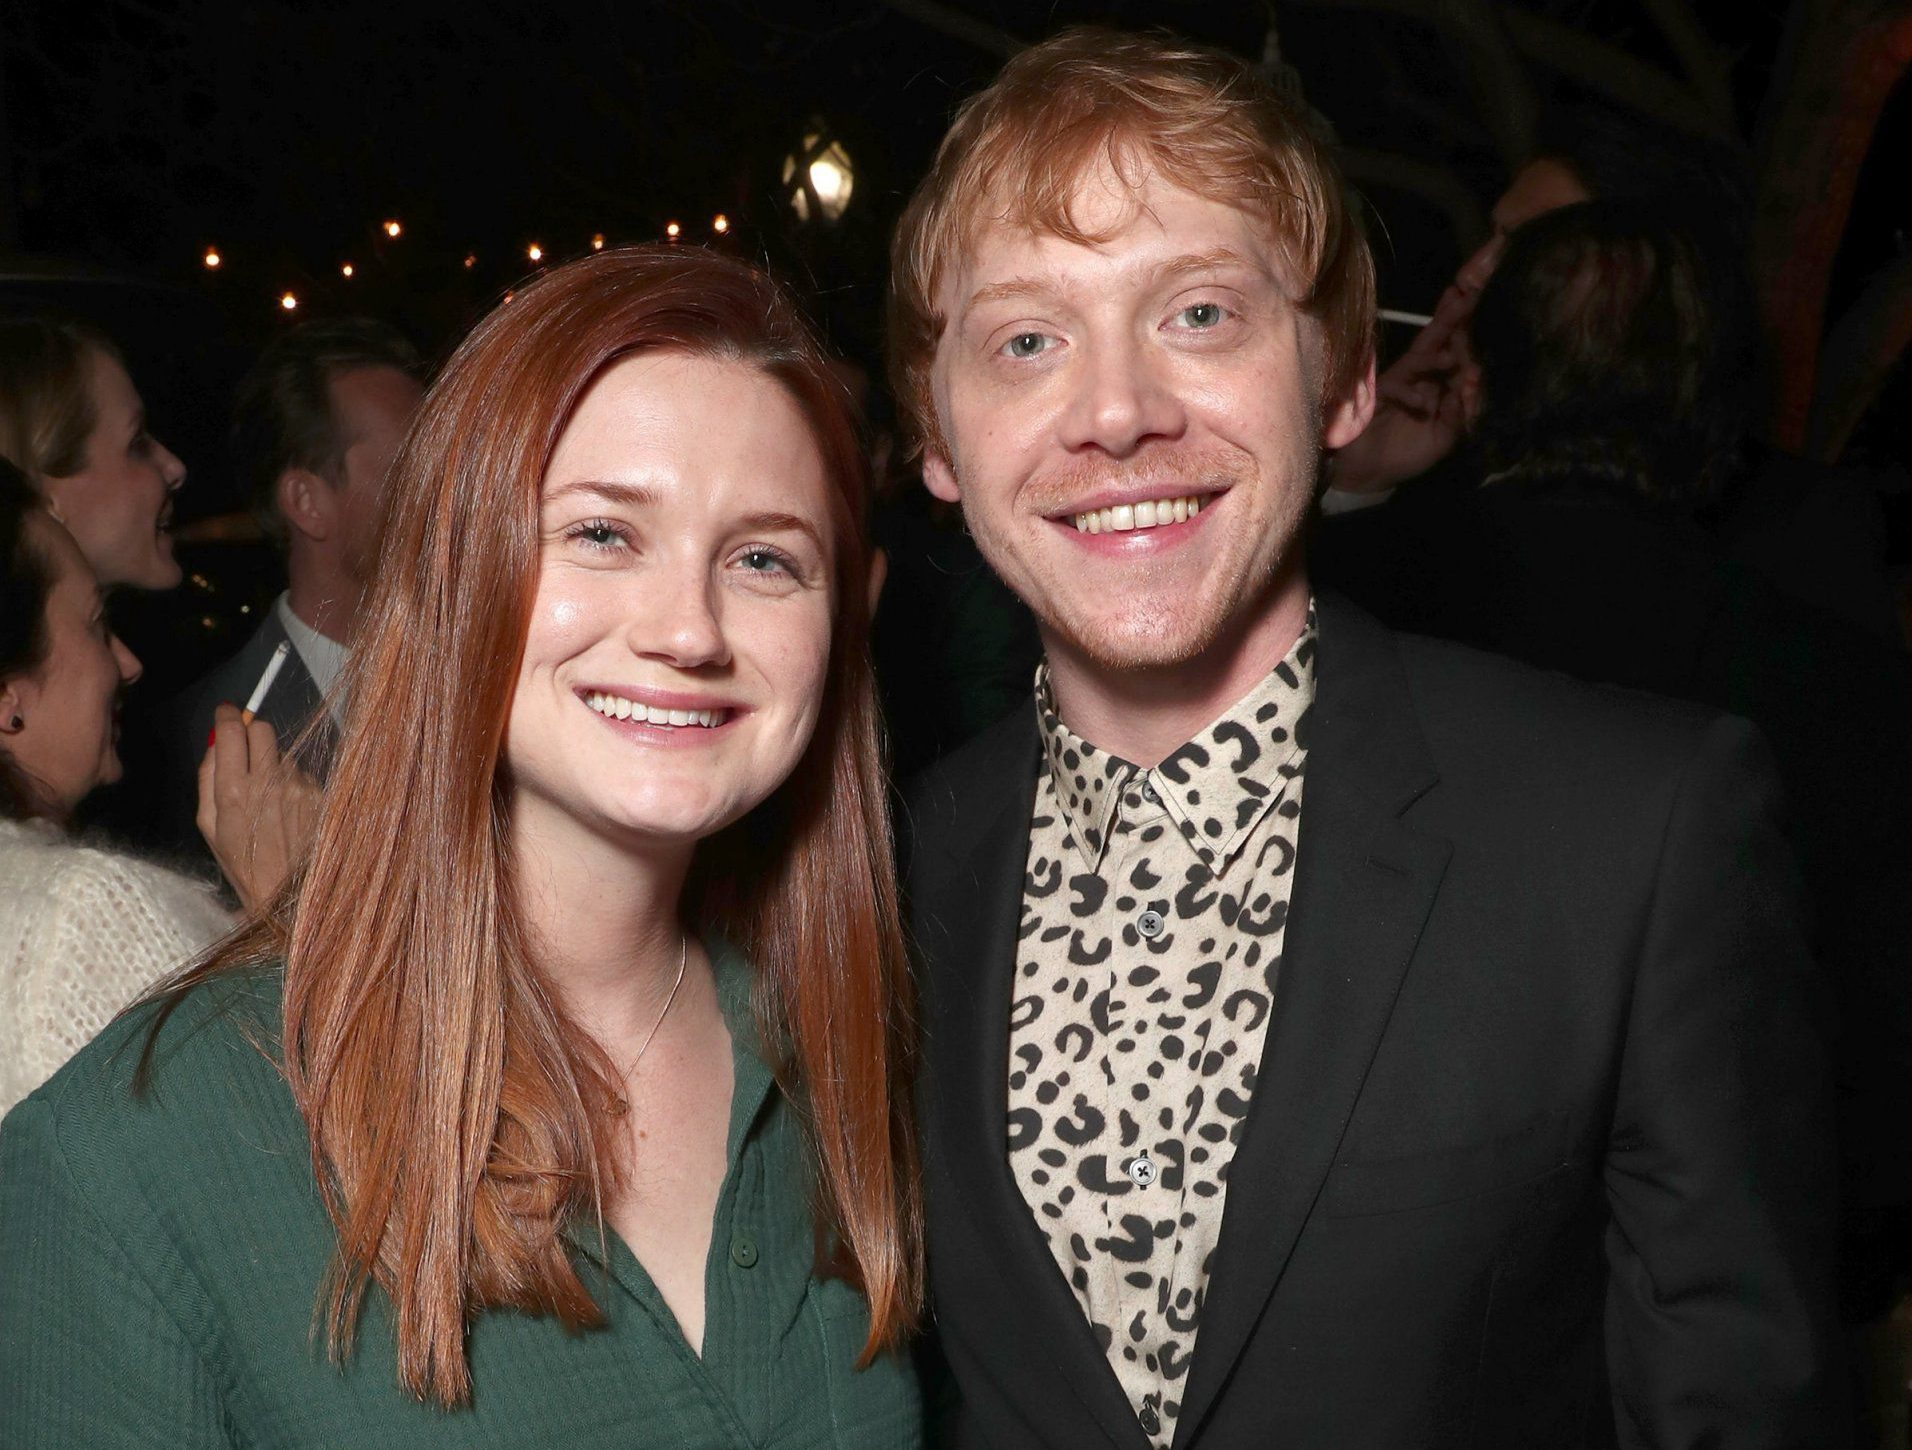 """CULVER CITY, CA - MARCH 09: Bonnie Wright and Rupert Grint attend the after party for the premiere screening of Crackle's """"Snatch"""" at Arclight Cinemas Culver City on March 9, 2017 in Culver City, California. (Photo by Todd Williamson/Getty Images)"""